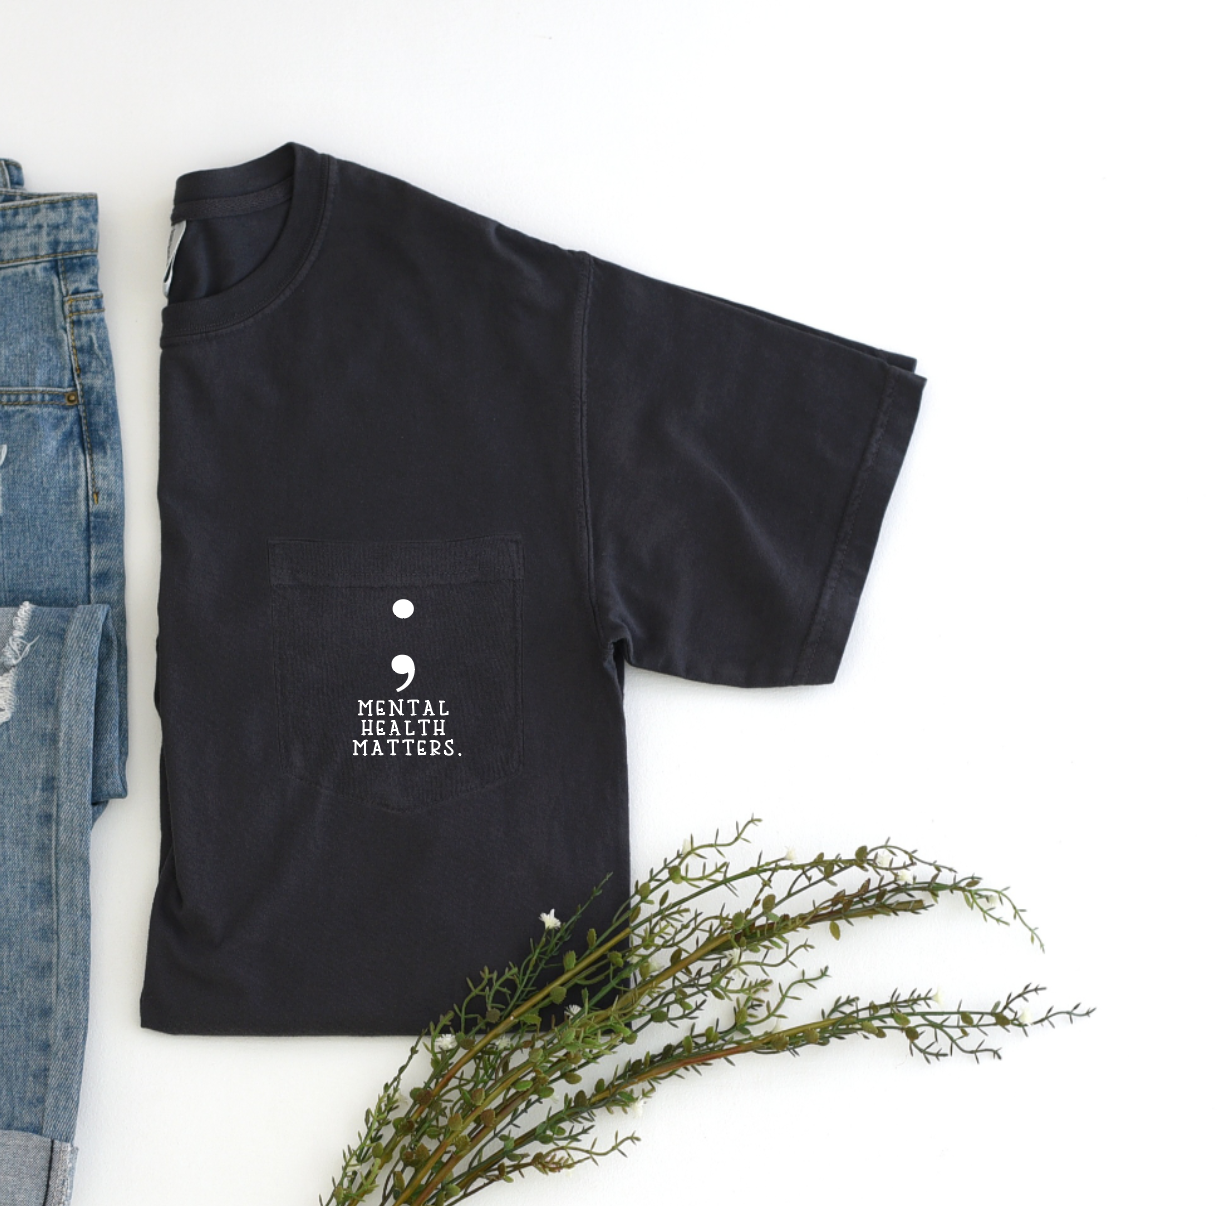 ; mental health matters pocket tee